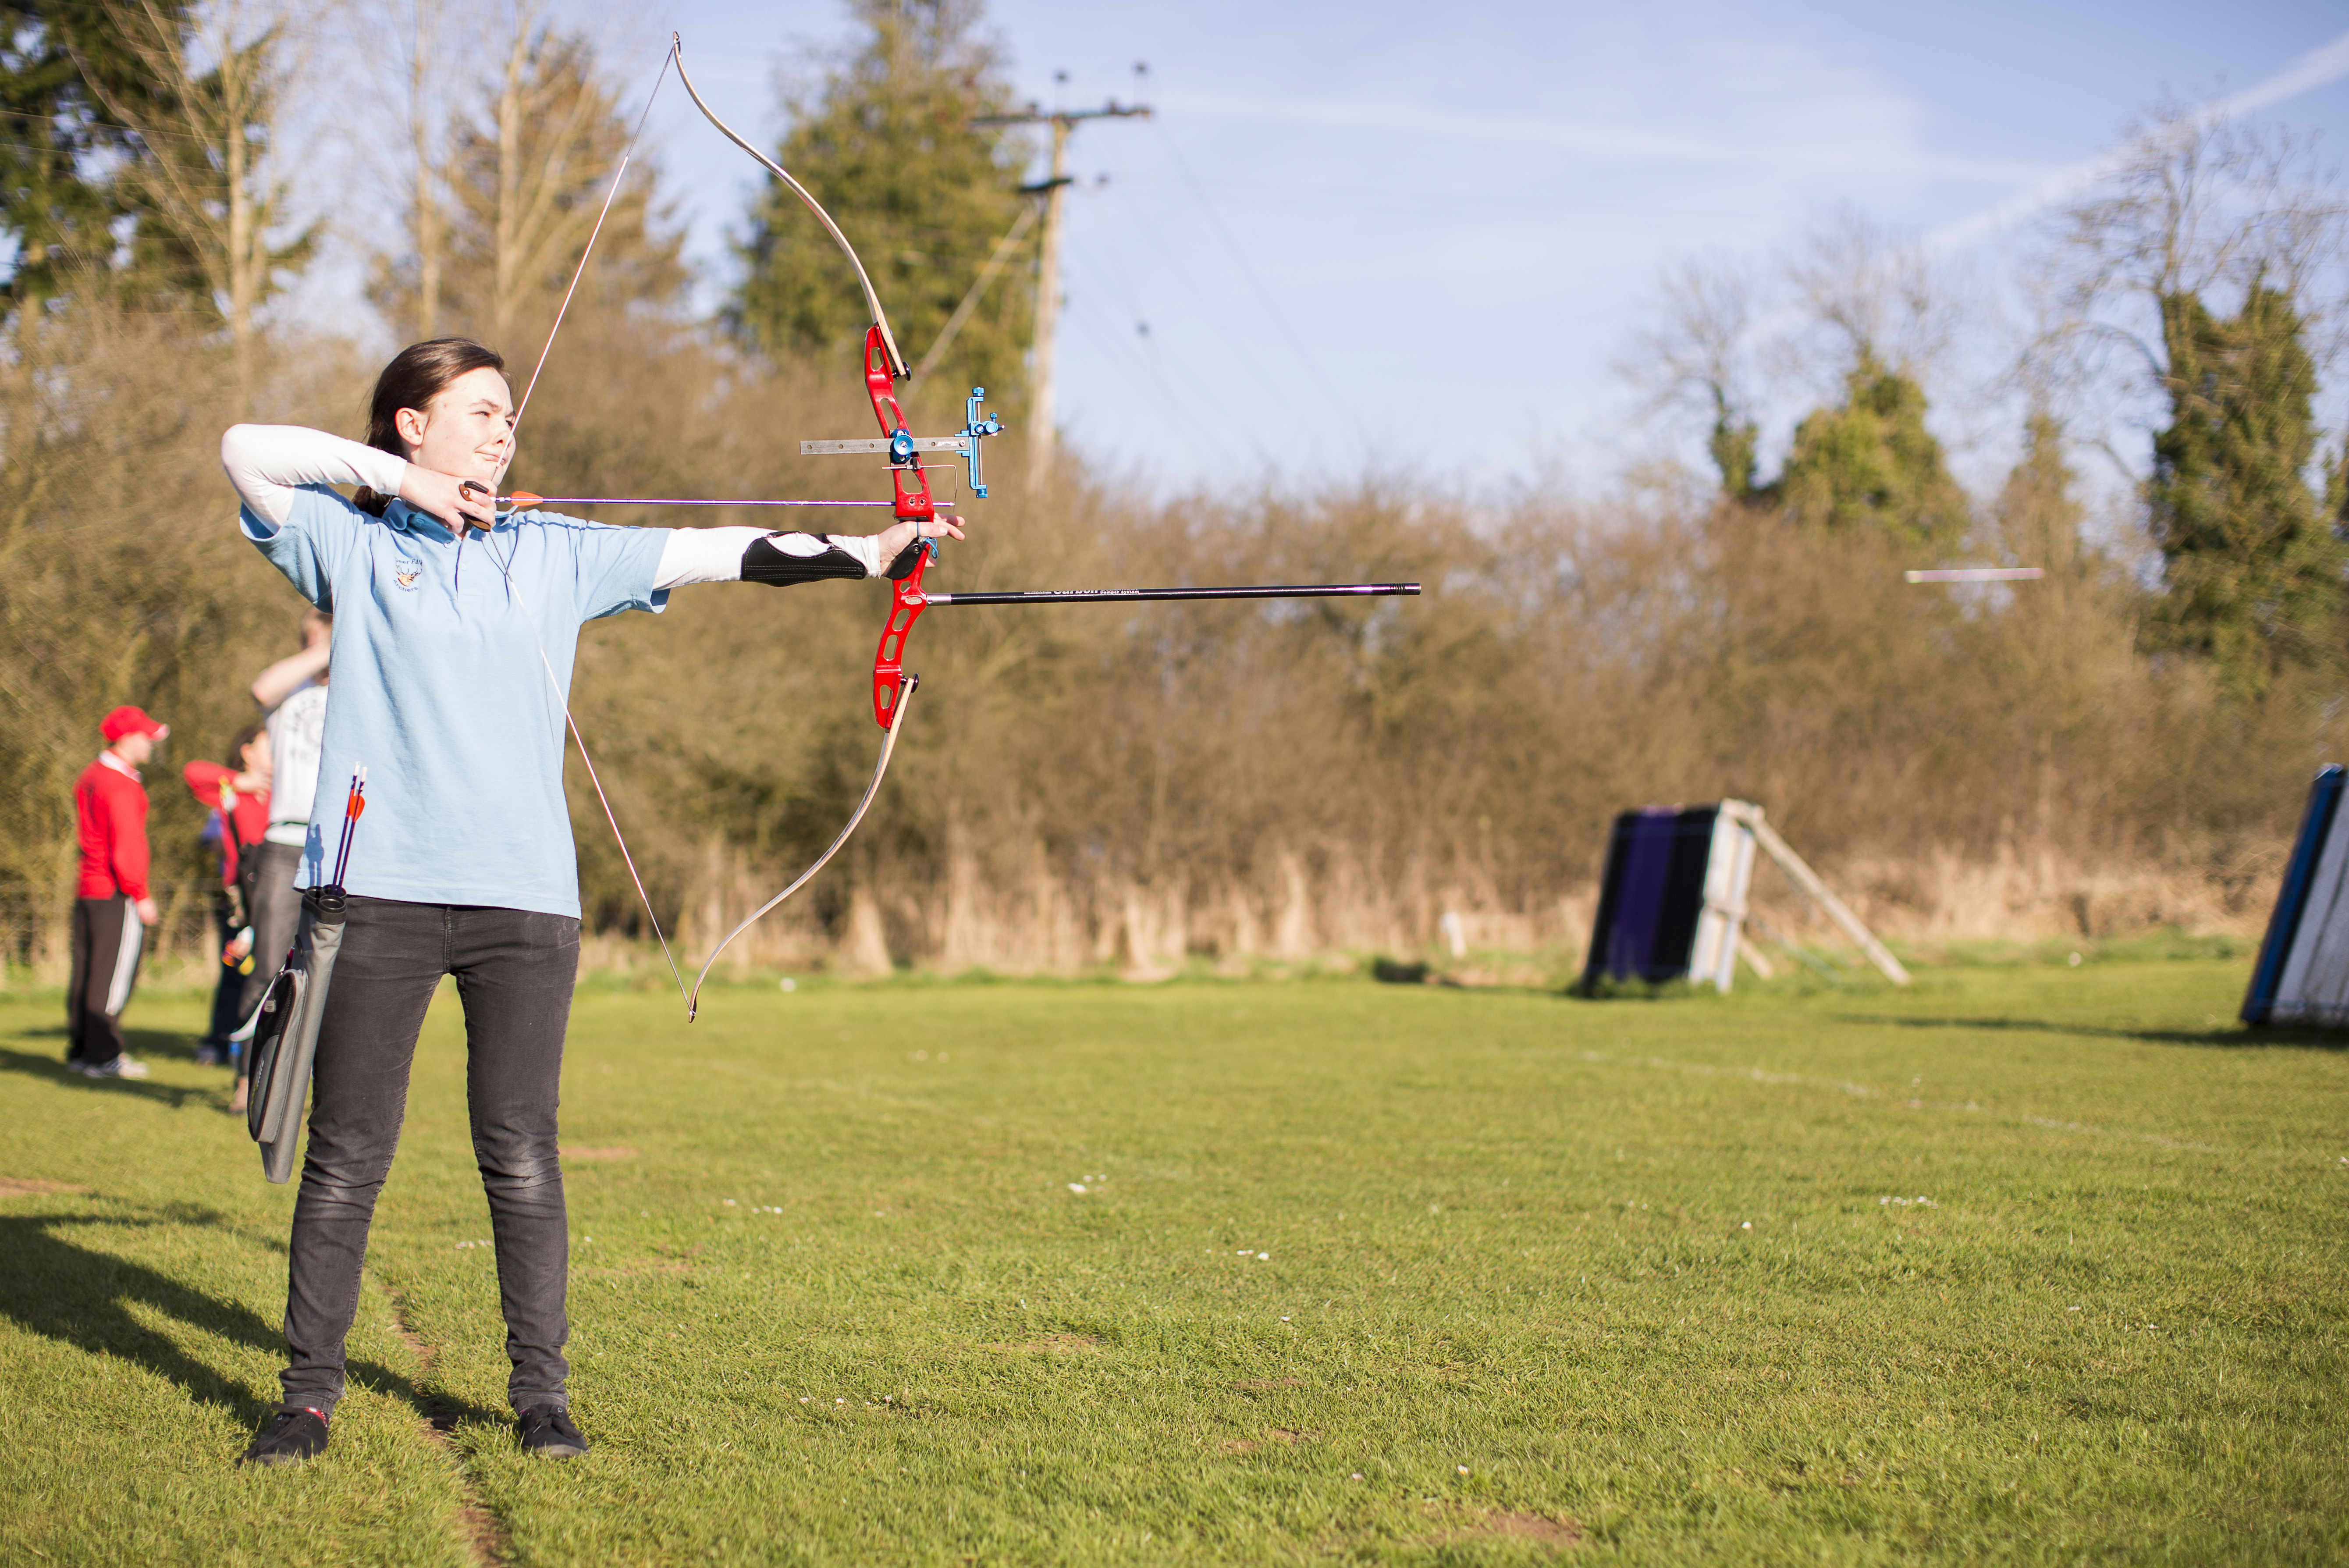 Archery practice girl blue t-shirt 2